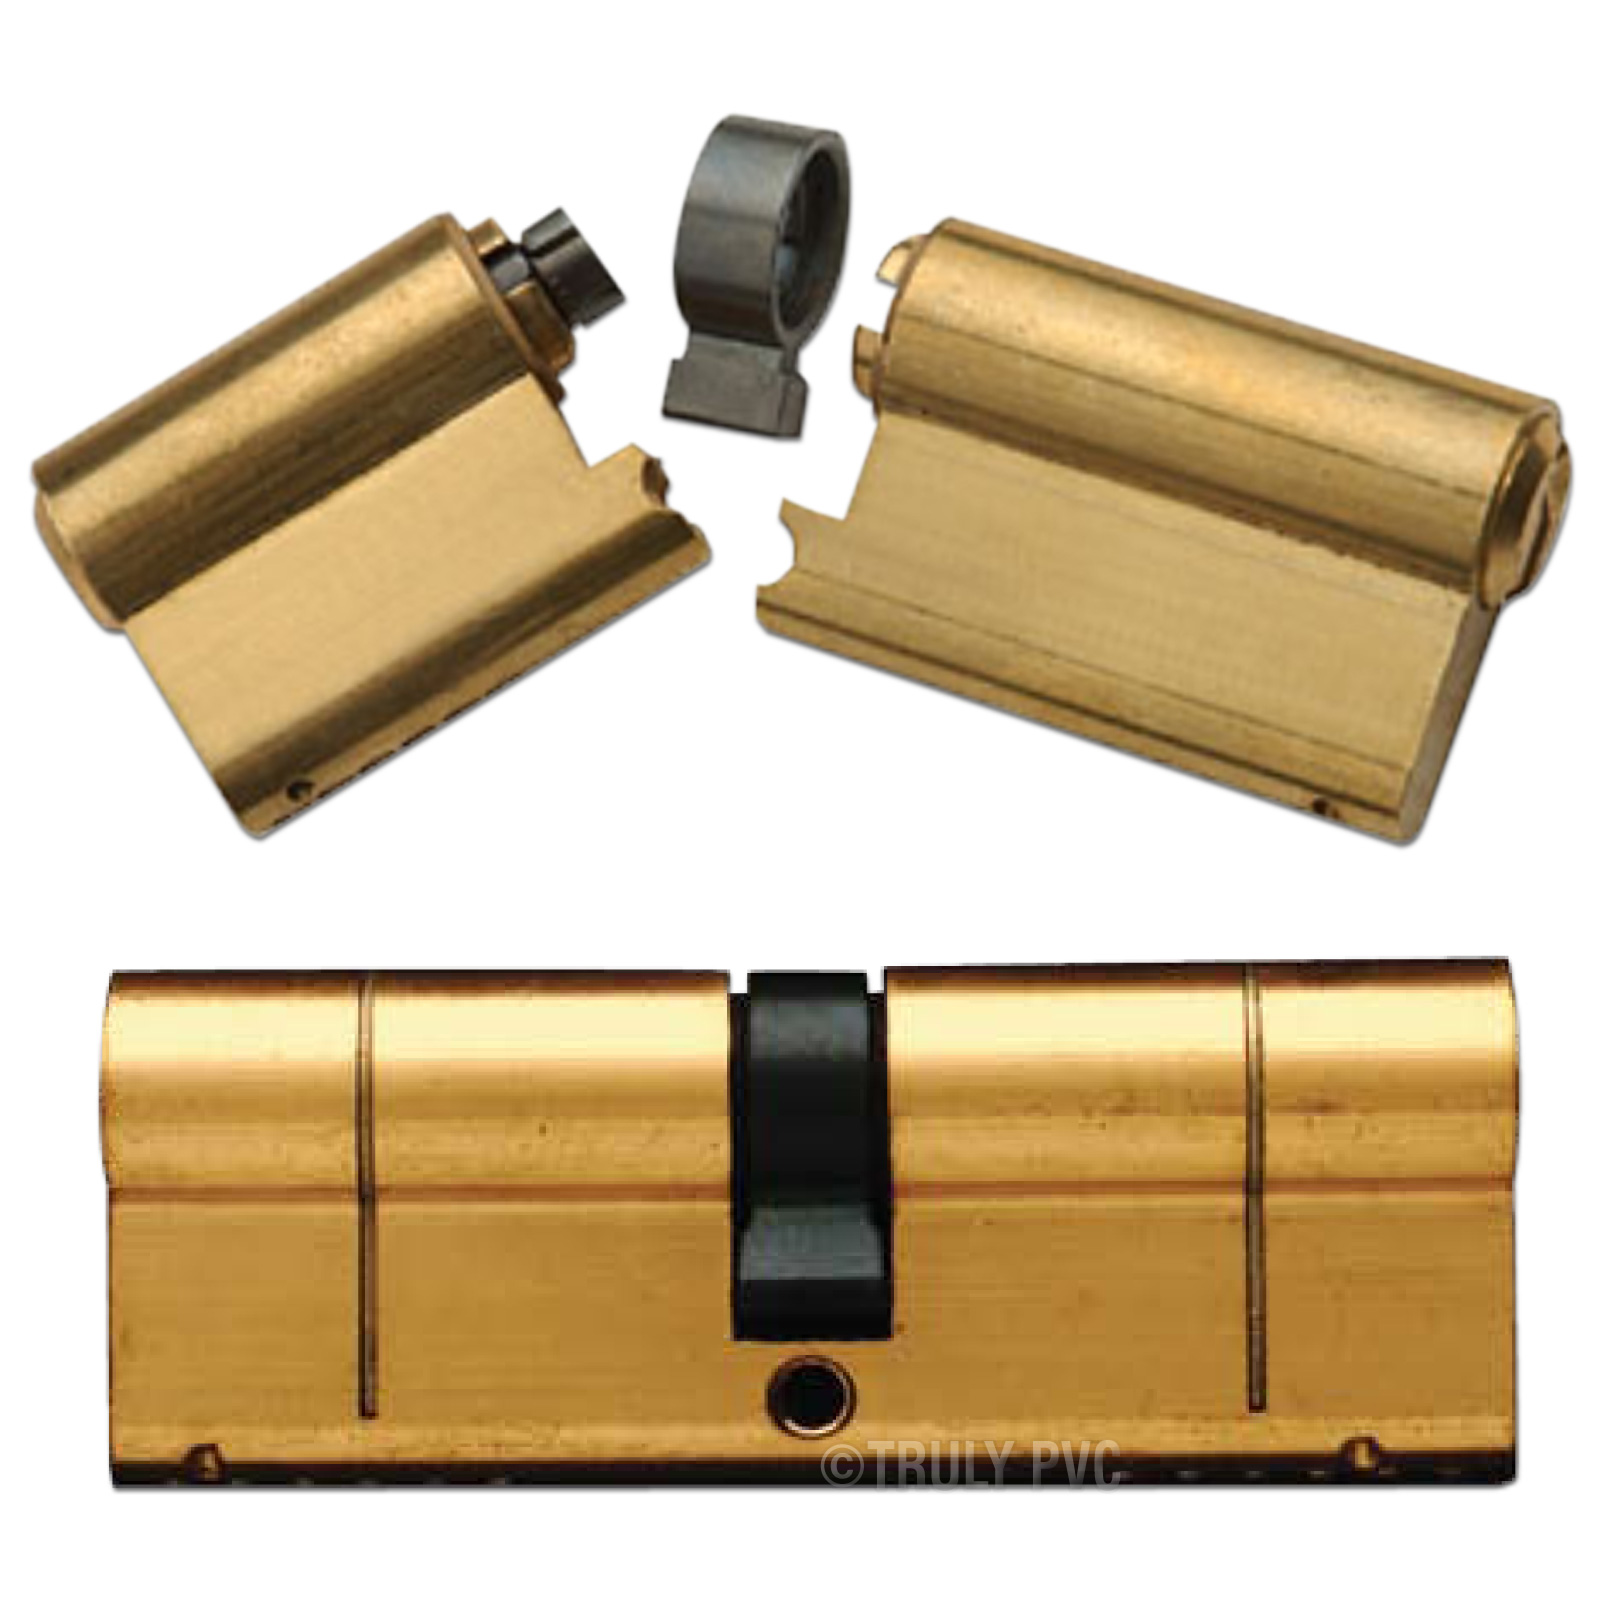 Lock Snapping Anti-Snap Break-Secure Snap-Safe Euro Cylinder Lock